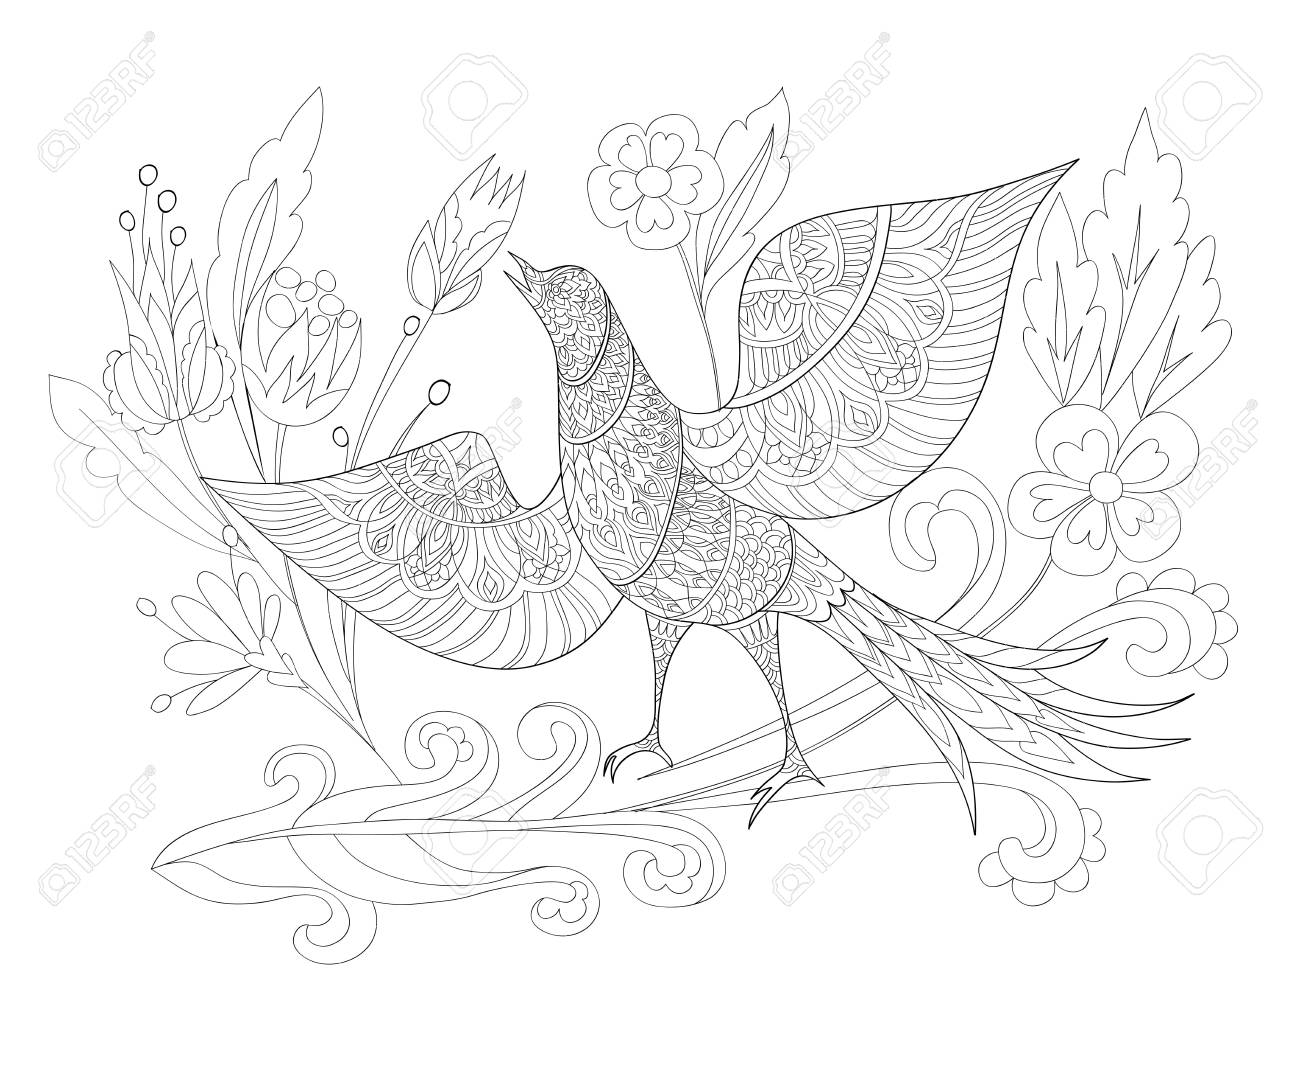 Coloring Book Page Fantasy Bird And Flowers Vector Illustration Hand Drawn Stock